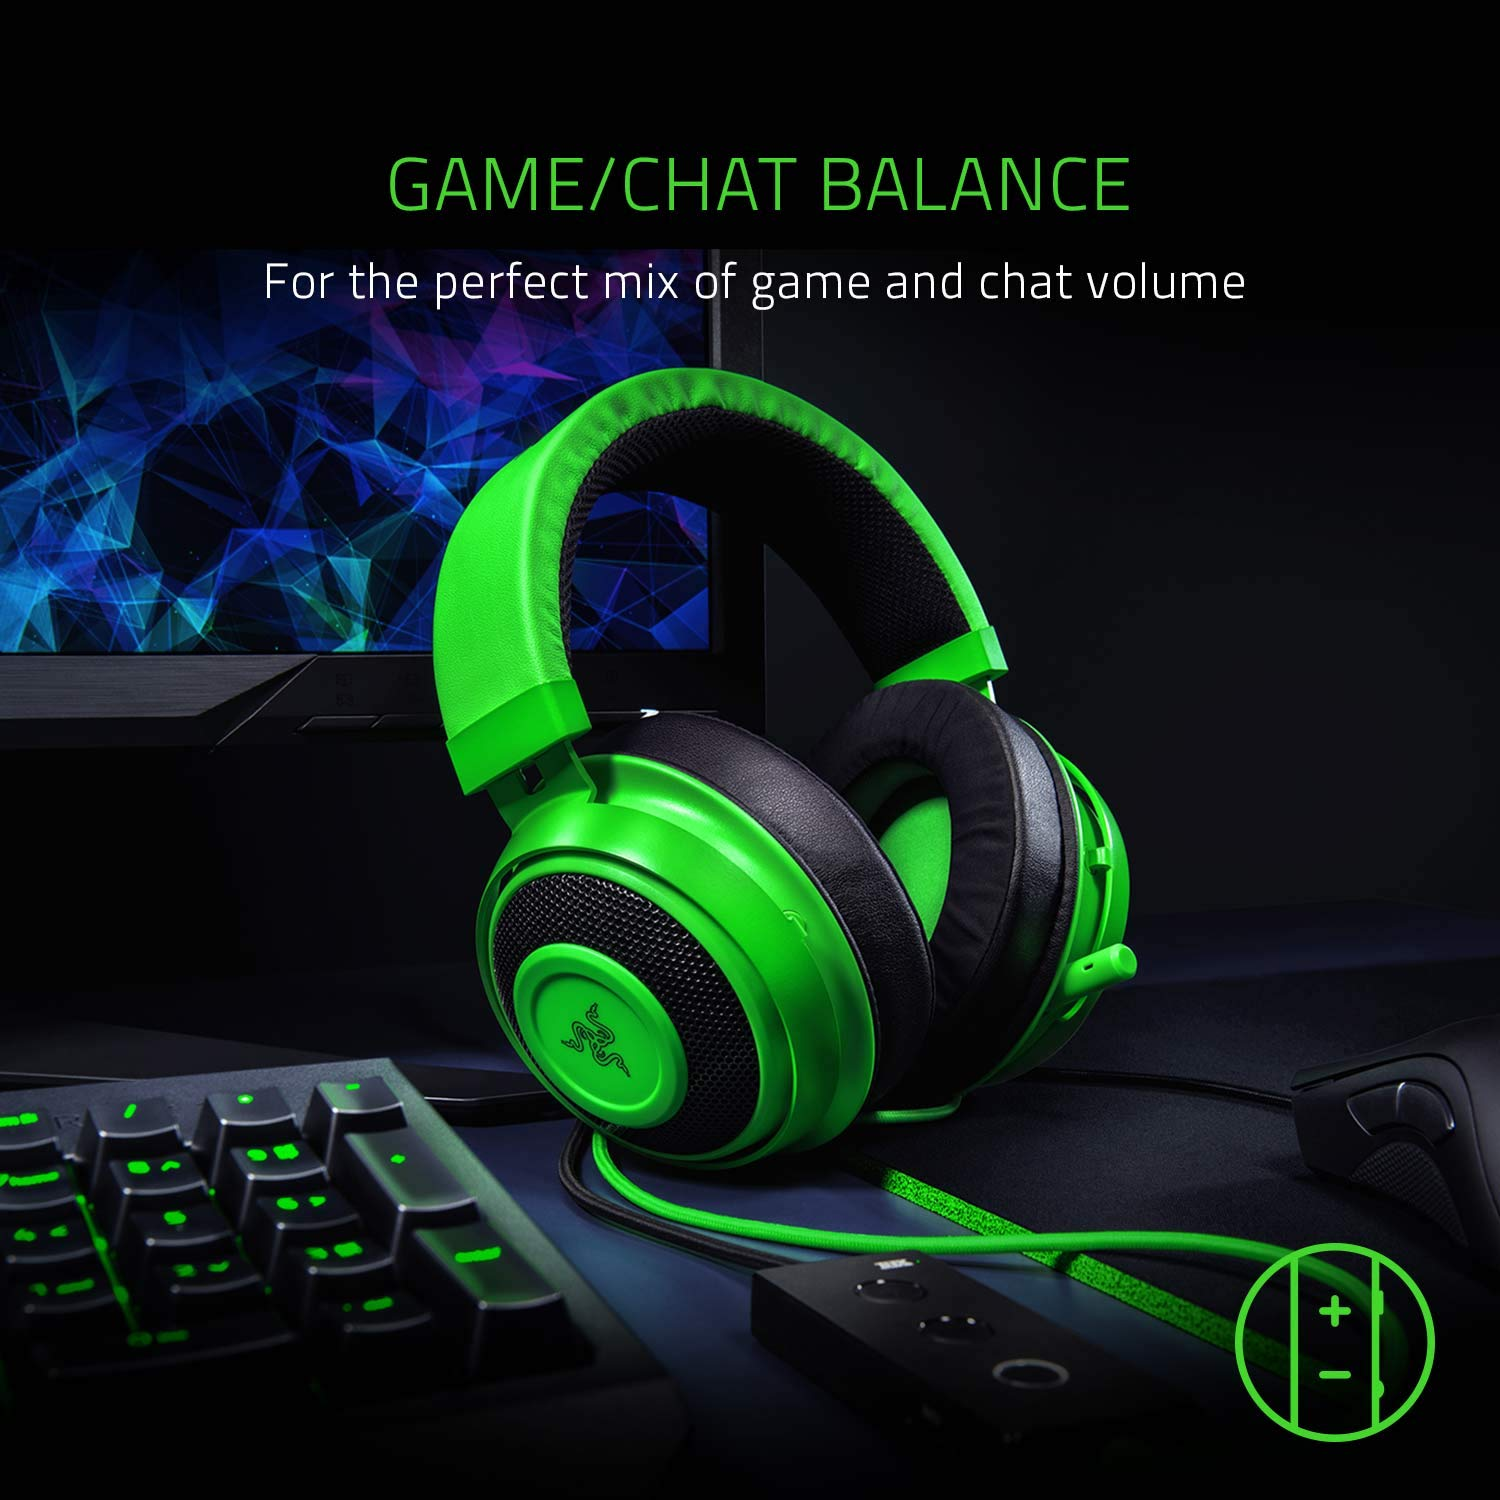 Razer Kraken Tournament Edition: THX Spatial Audio - Full Audio Control - Cooling Gel-Infused Ear Cushions - Gaming Headset Works with PC, PS4, Xbox One, Switch, & Mobile Devices - Black by Razer (Image #4)